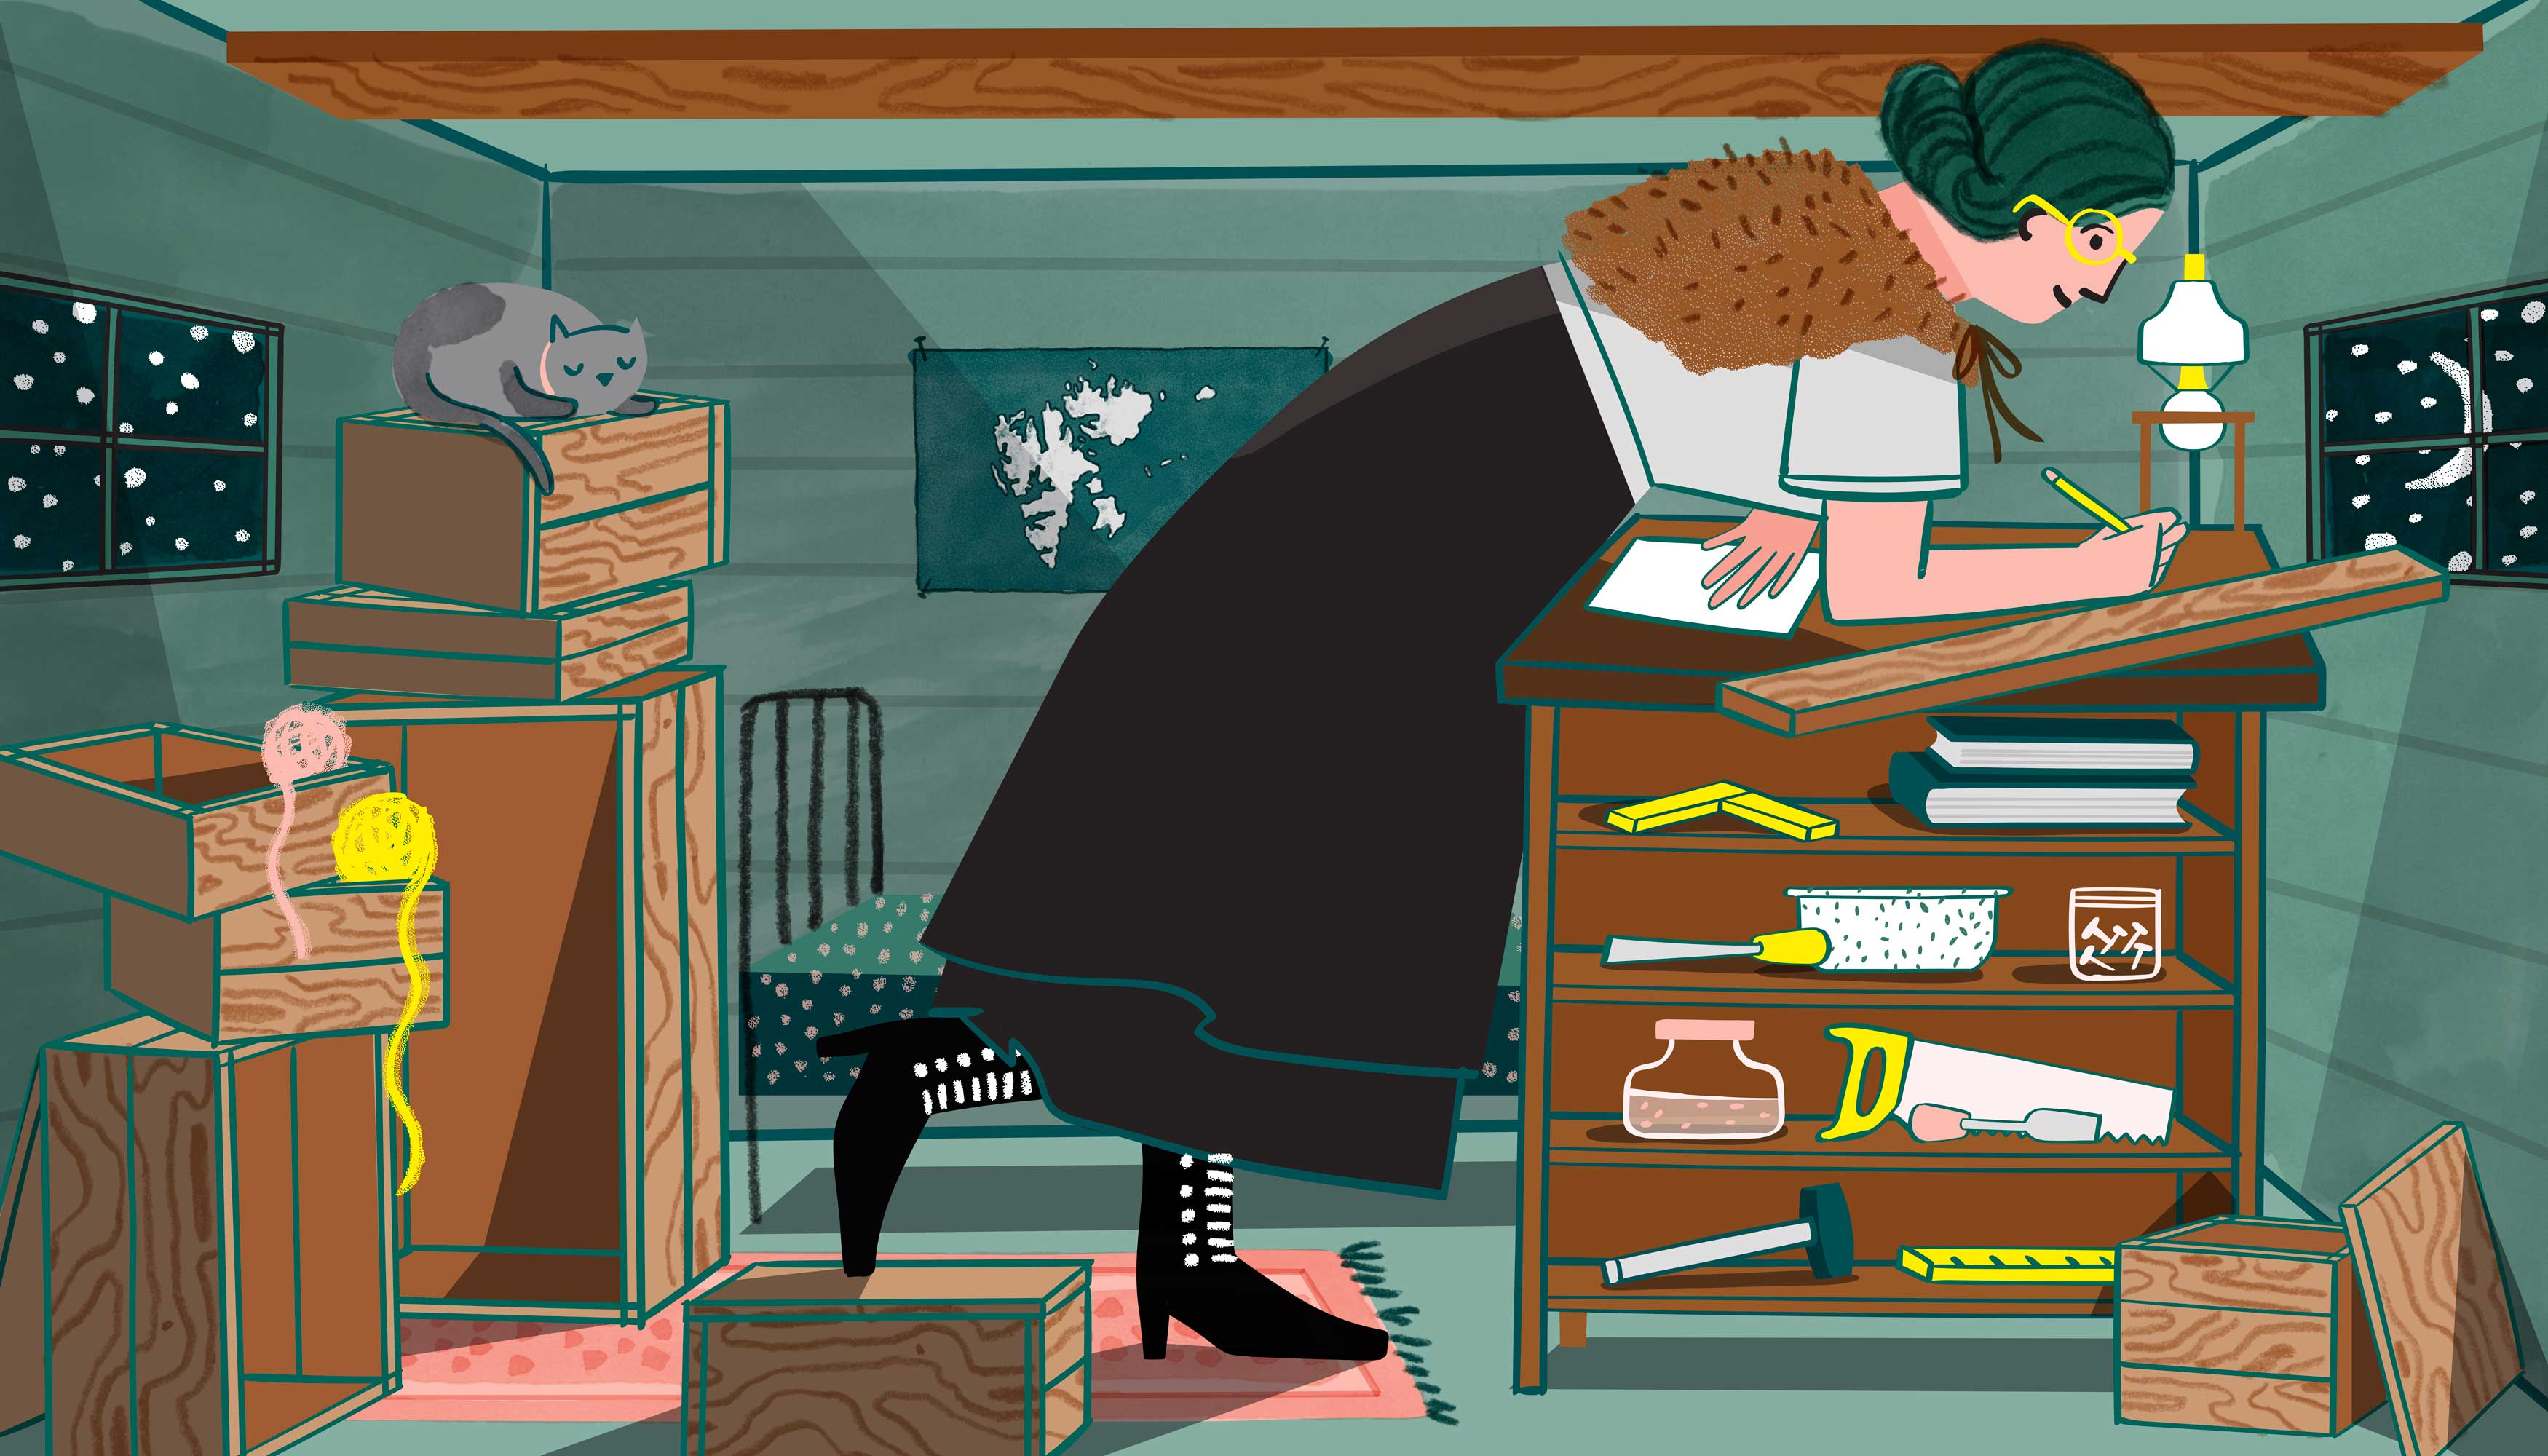 A woman crouches over a desk in an attic with a low ceiling. he is wearing a floor-length skirt, victorian-style lace up boots, and has a fur stole wrapped around her shoulders. She is surrounded by miscellaneous crafting supplies, tools, and stacks of boxes. Illustration.